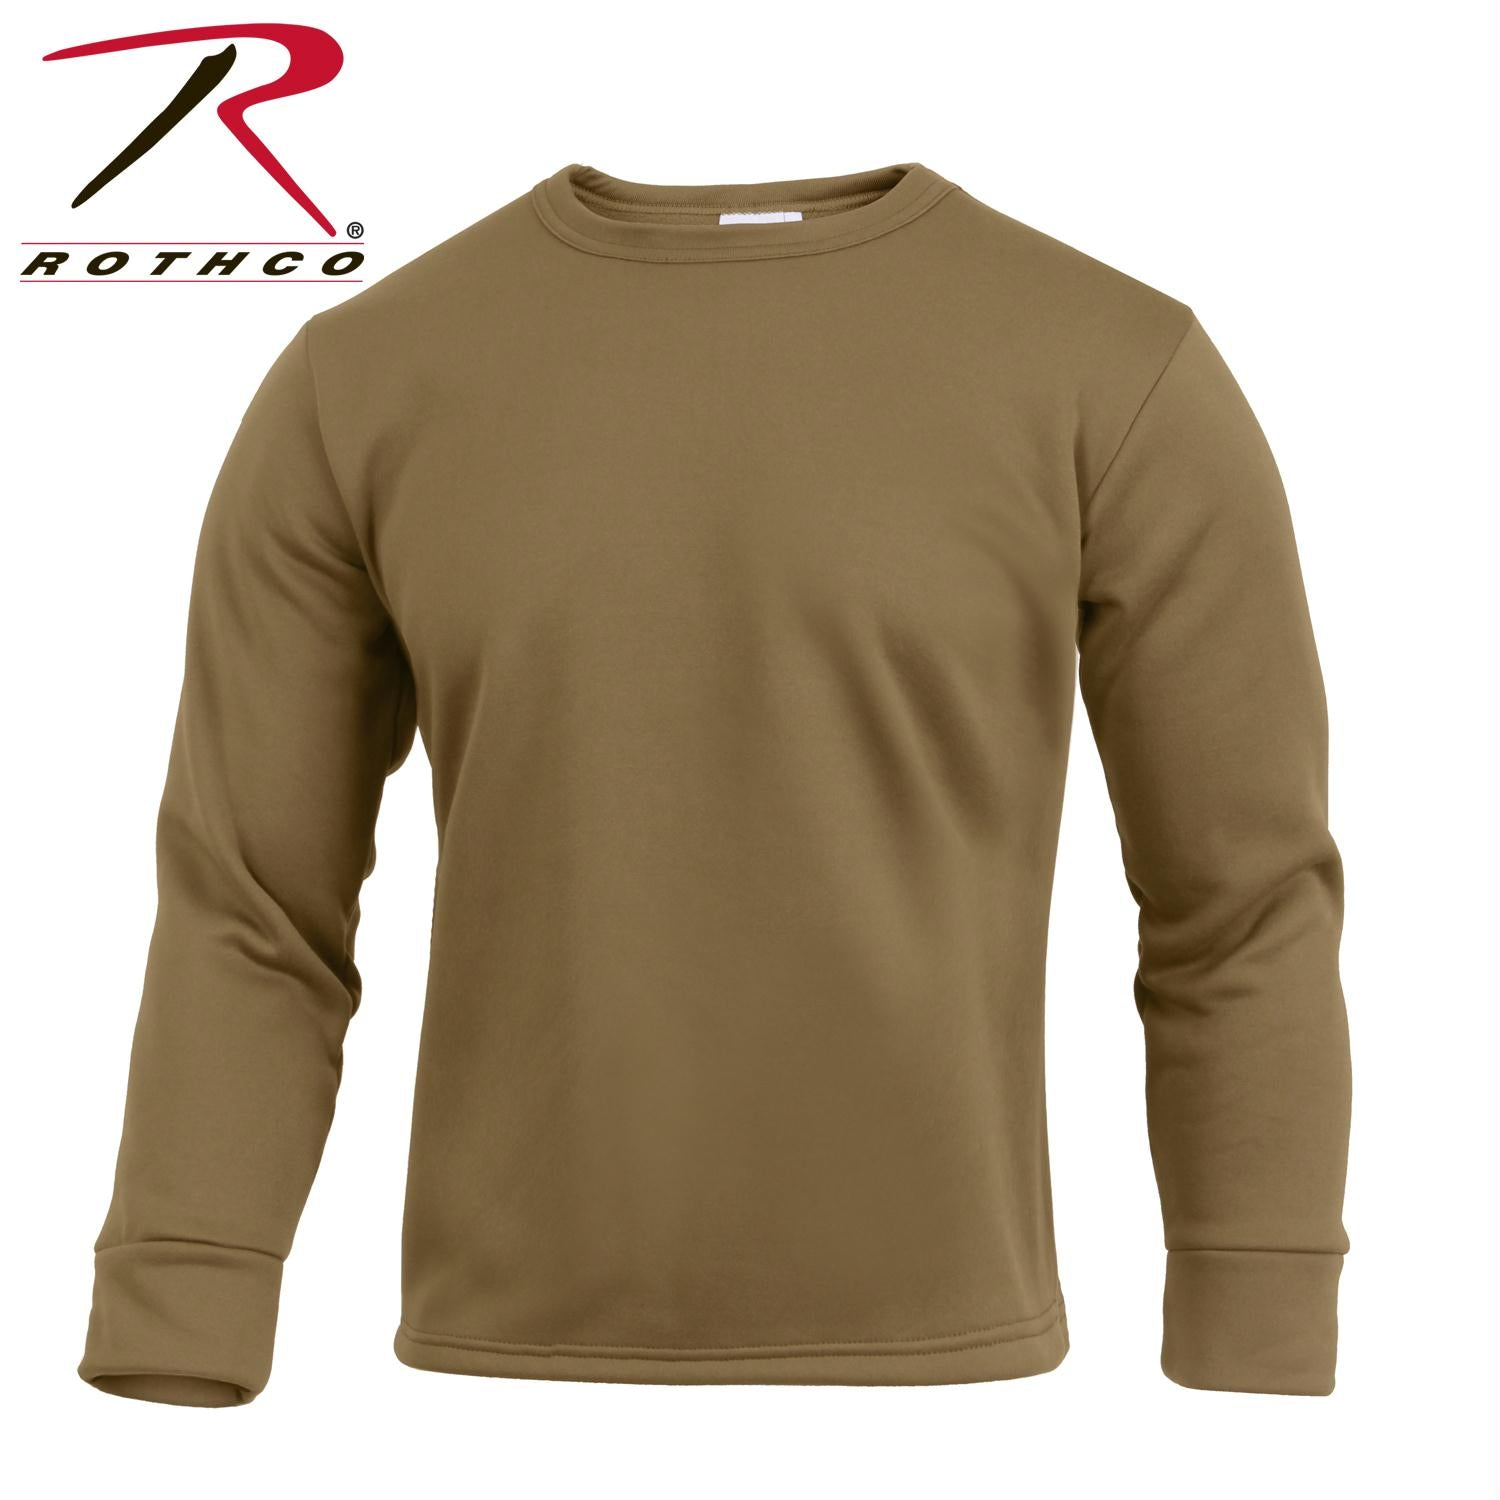 Rothco Gen III Silk Weight Underwear Top - AR 670-1 Coyote Brown / L